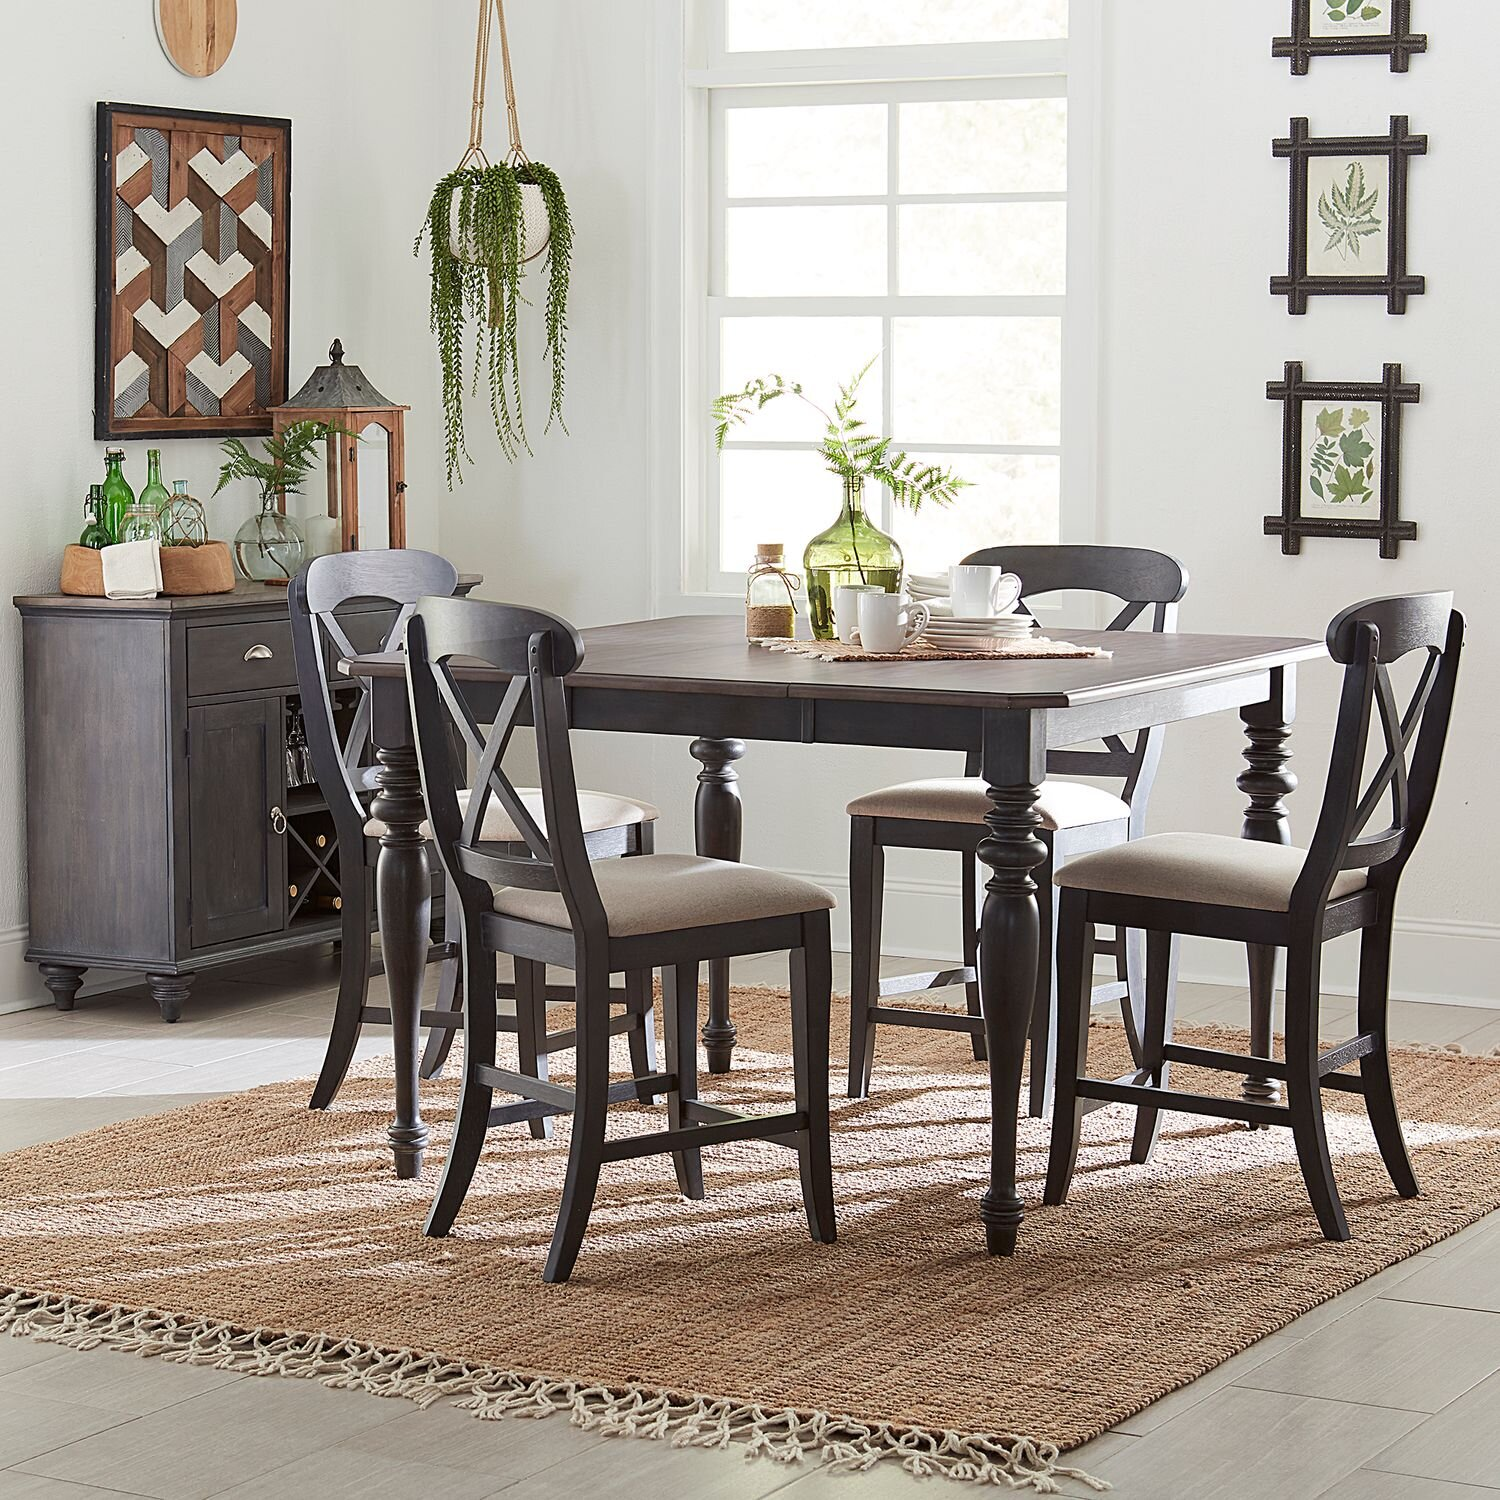 ocean isle counter height dining collection